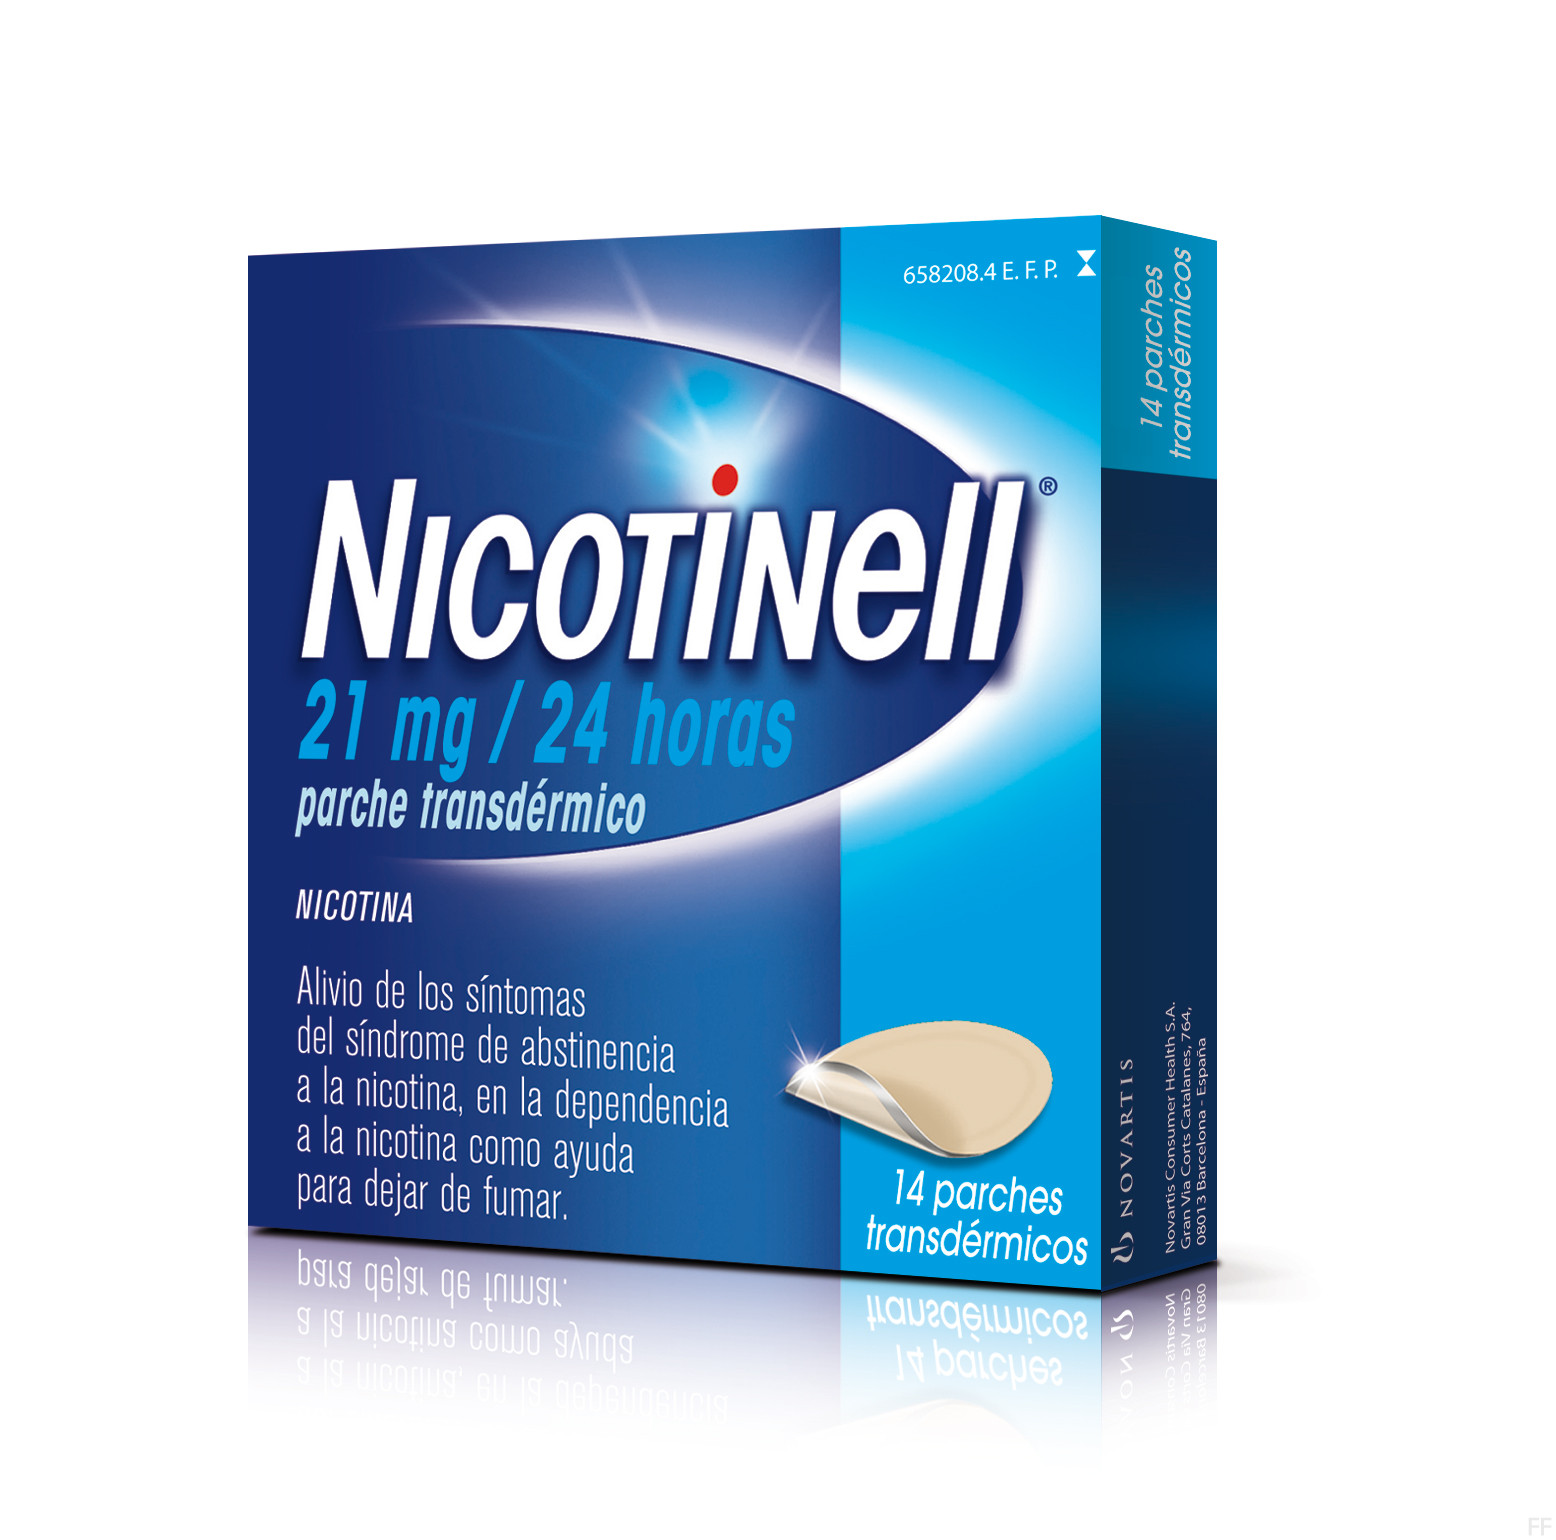 nicotinell 14 parches